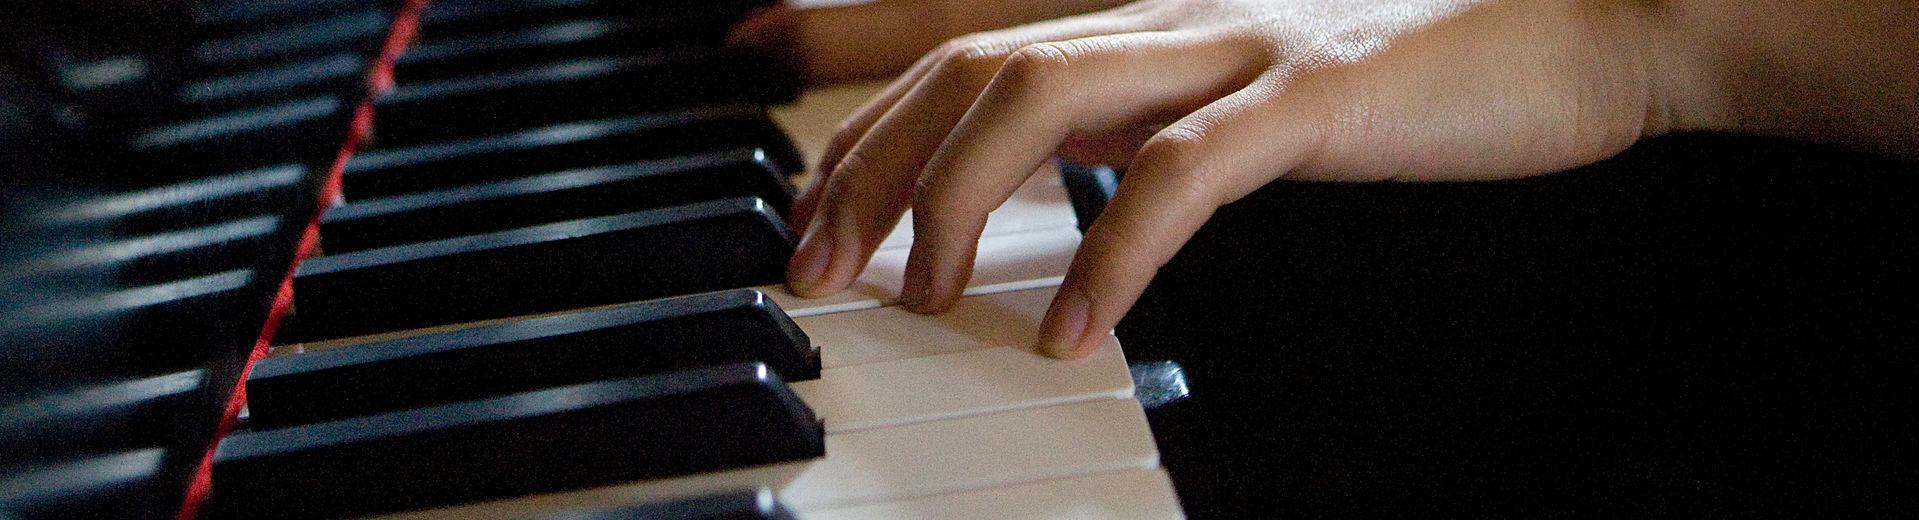 Six hands on piano keys playing a song